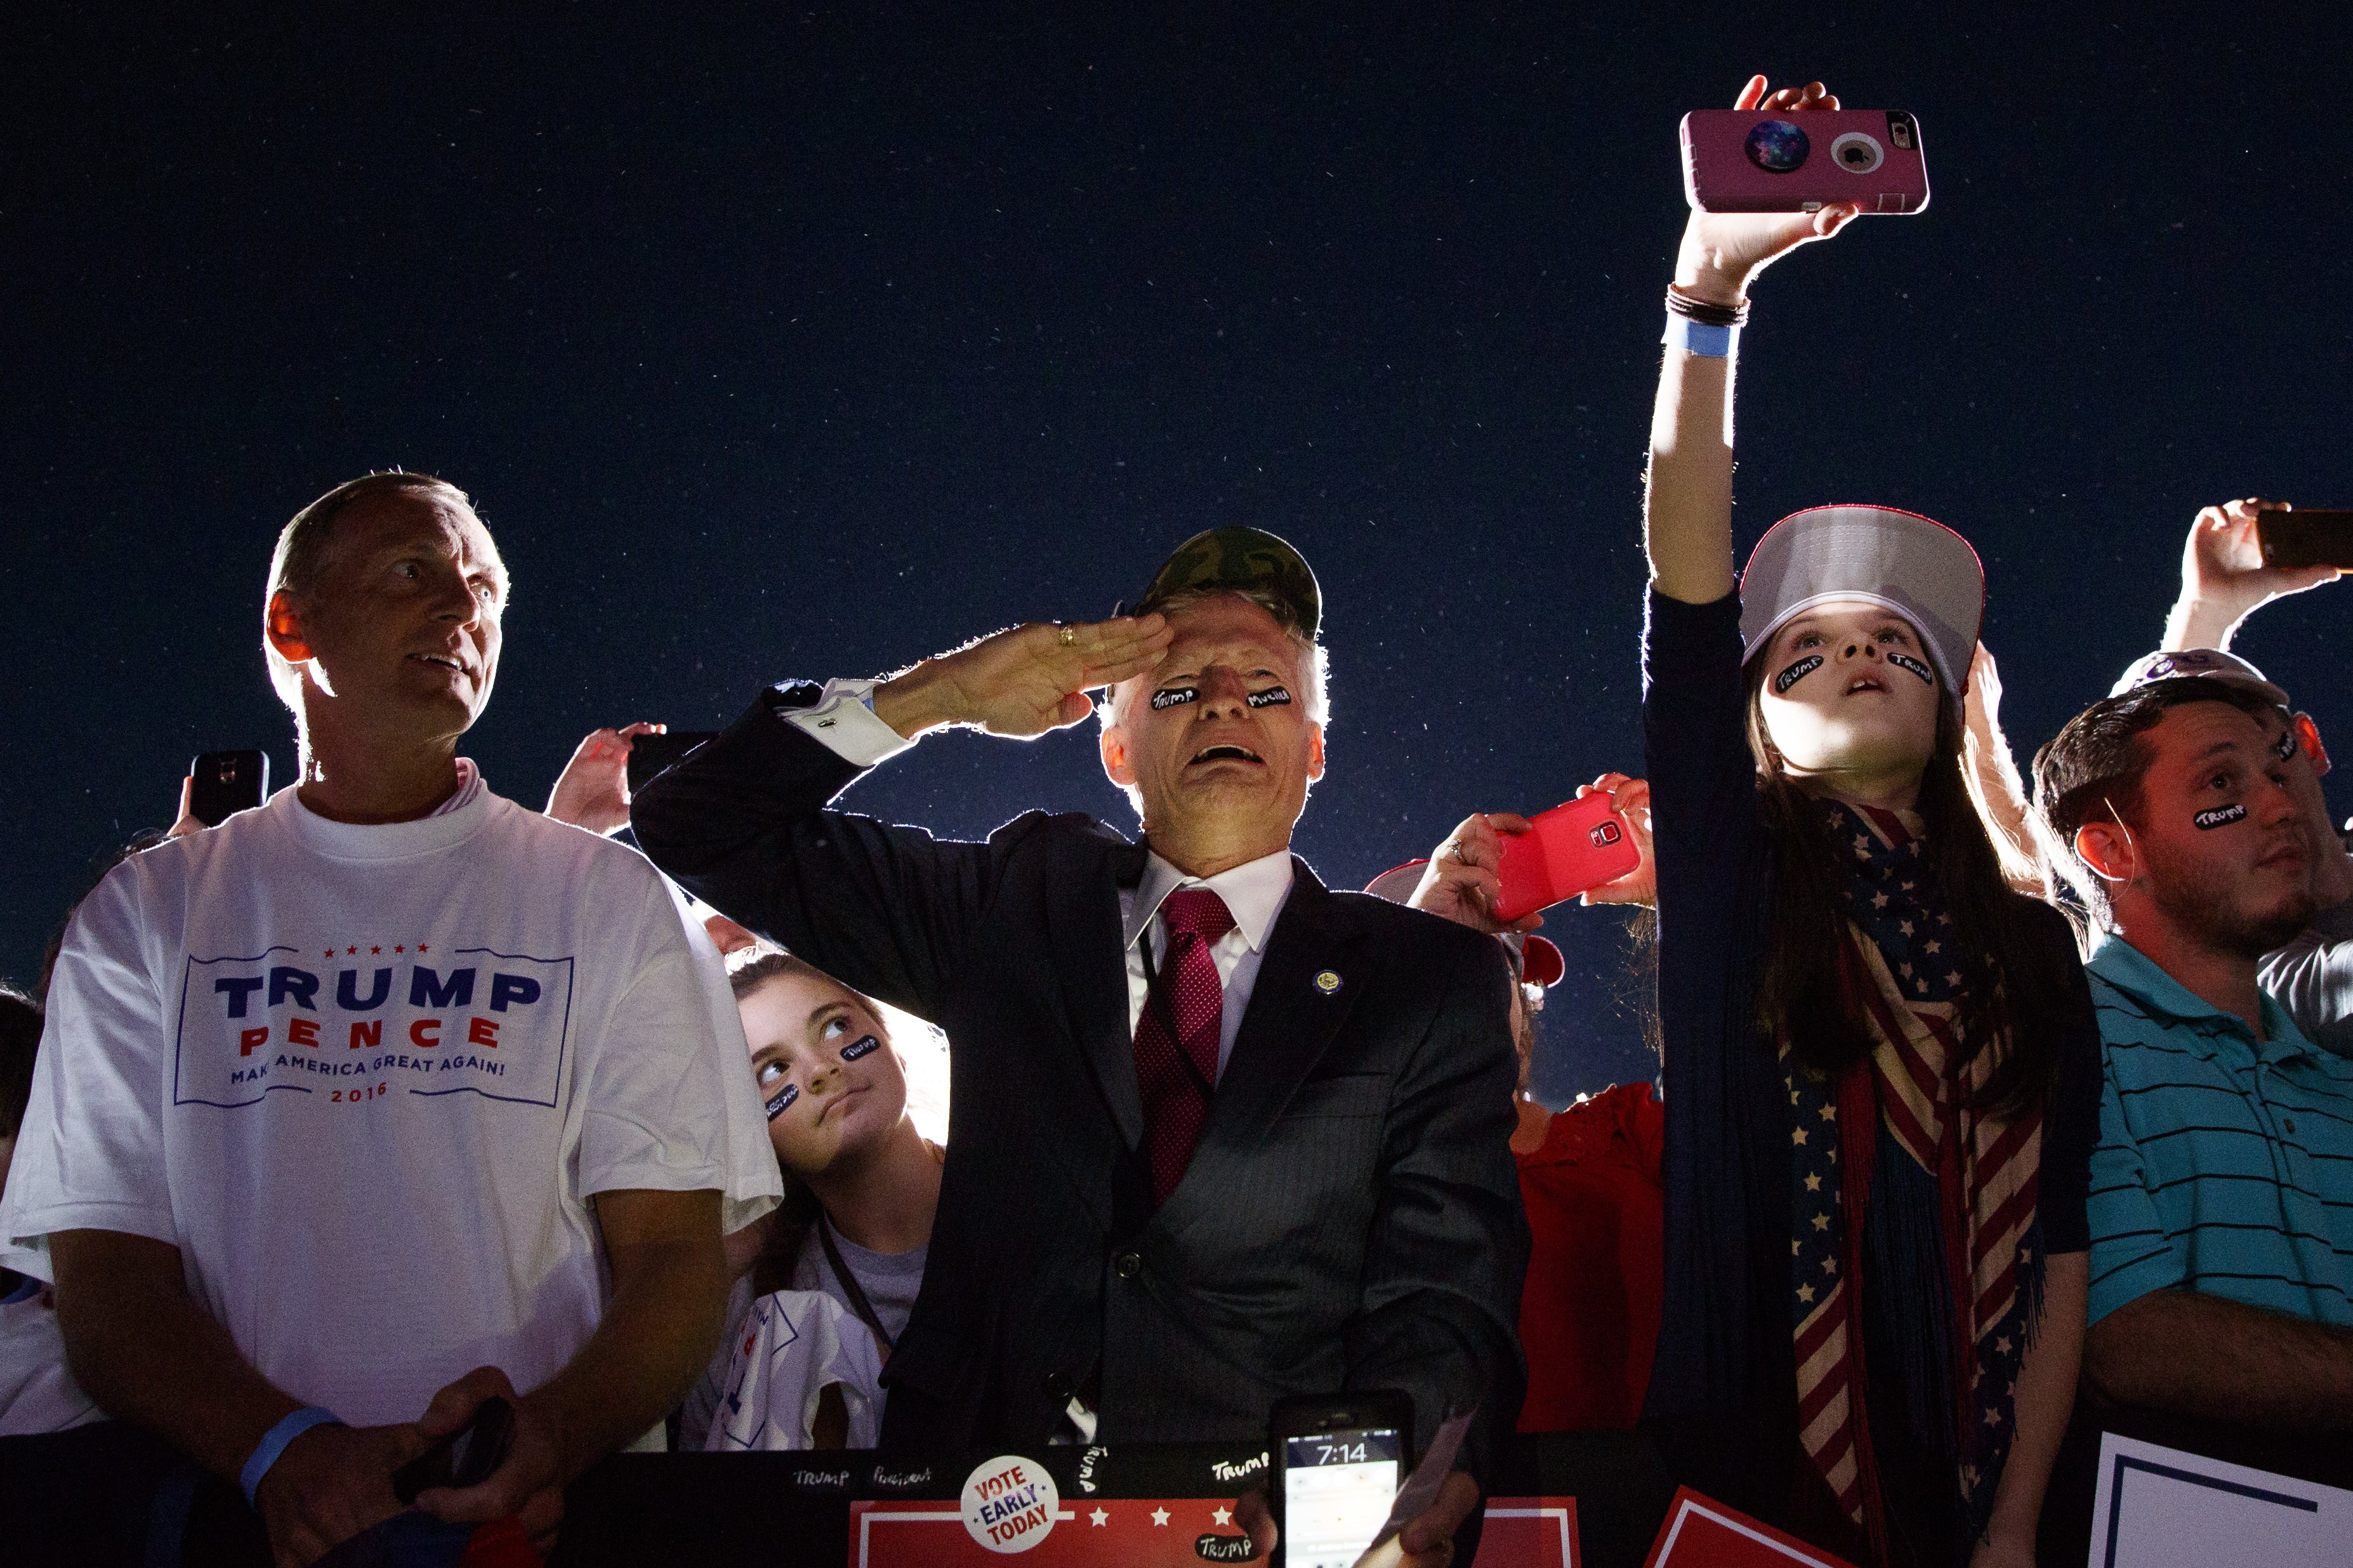 Jeff Muller of Wilmington, N.C., salutes as Donald Trump arrives at a campaign rally in Kinston, N.C., on Oct. 26, 2016.